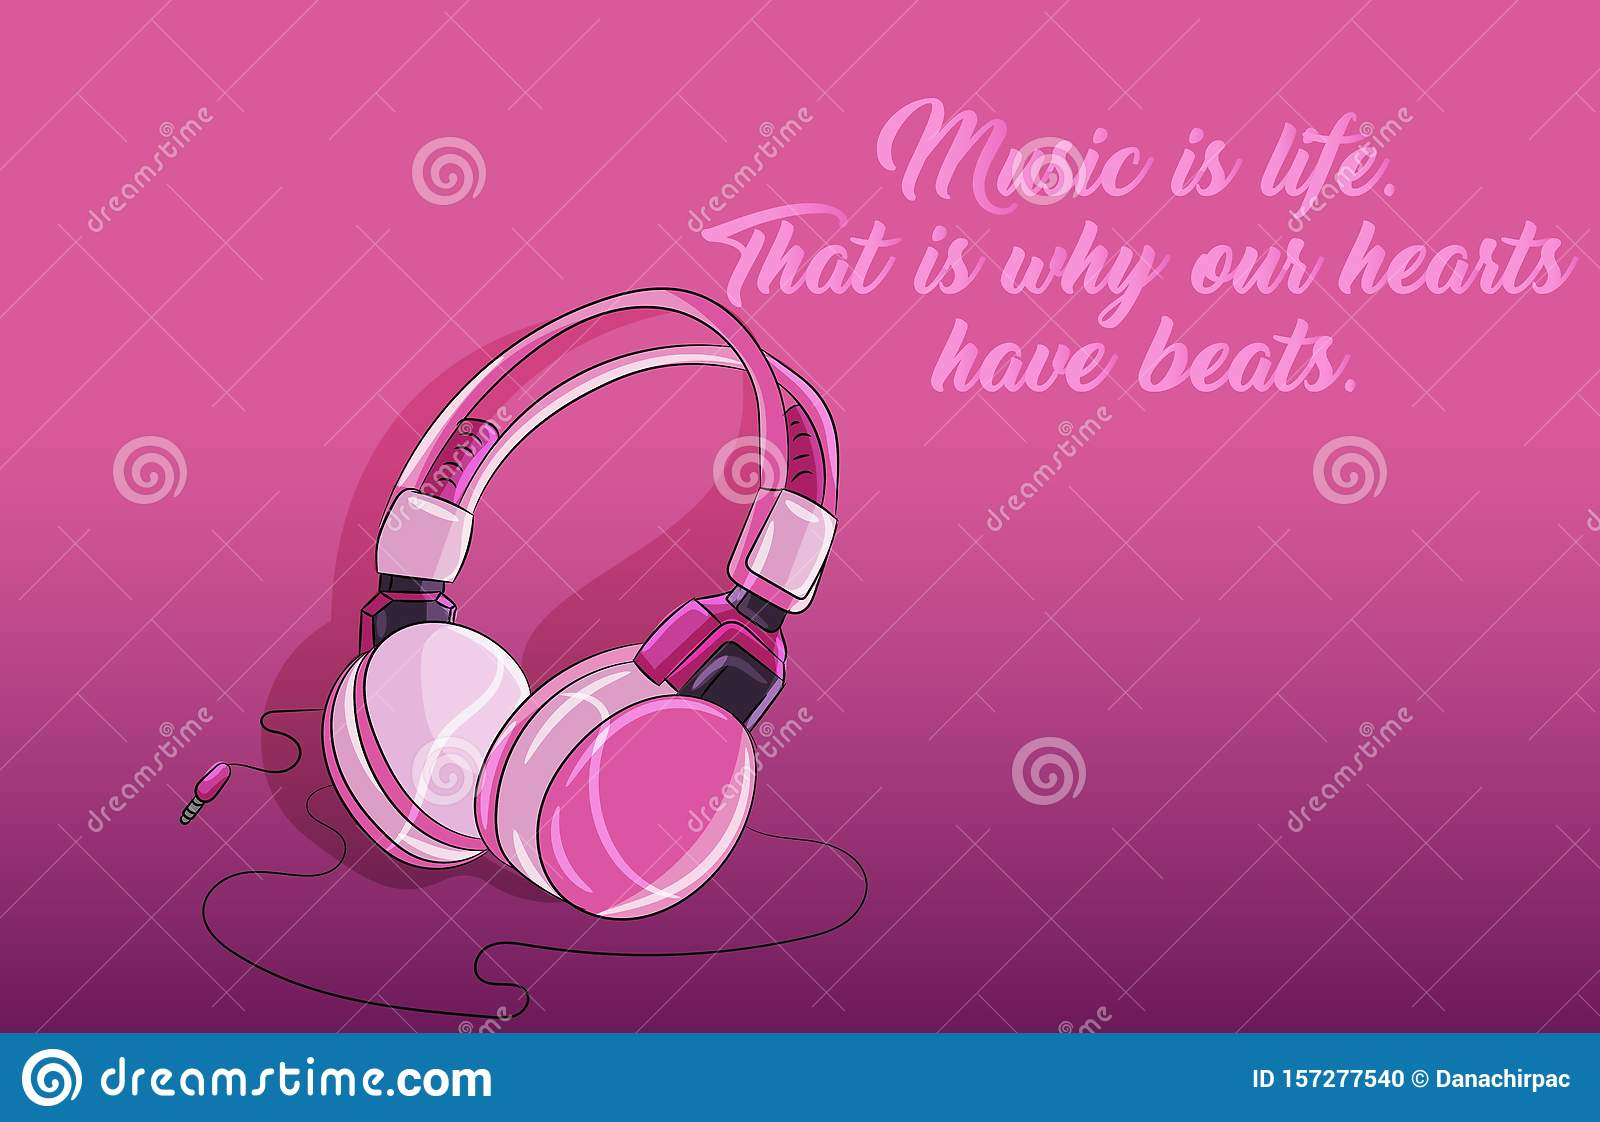 pink purple girly plastic shiny headphones quote music perfect pc desktop background 157277540